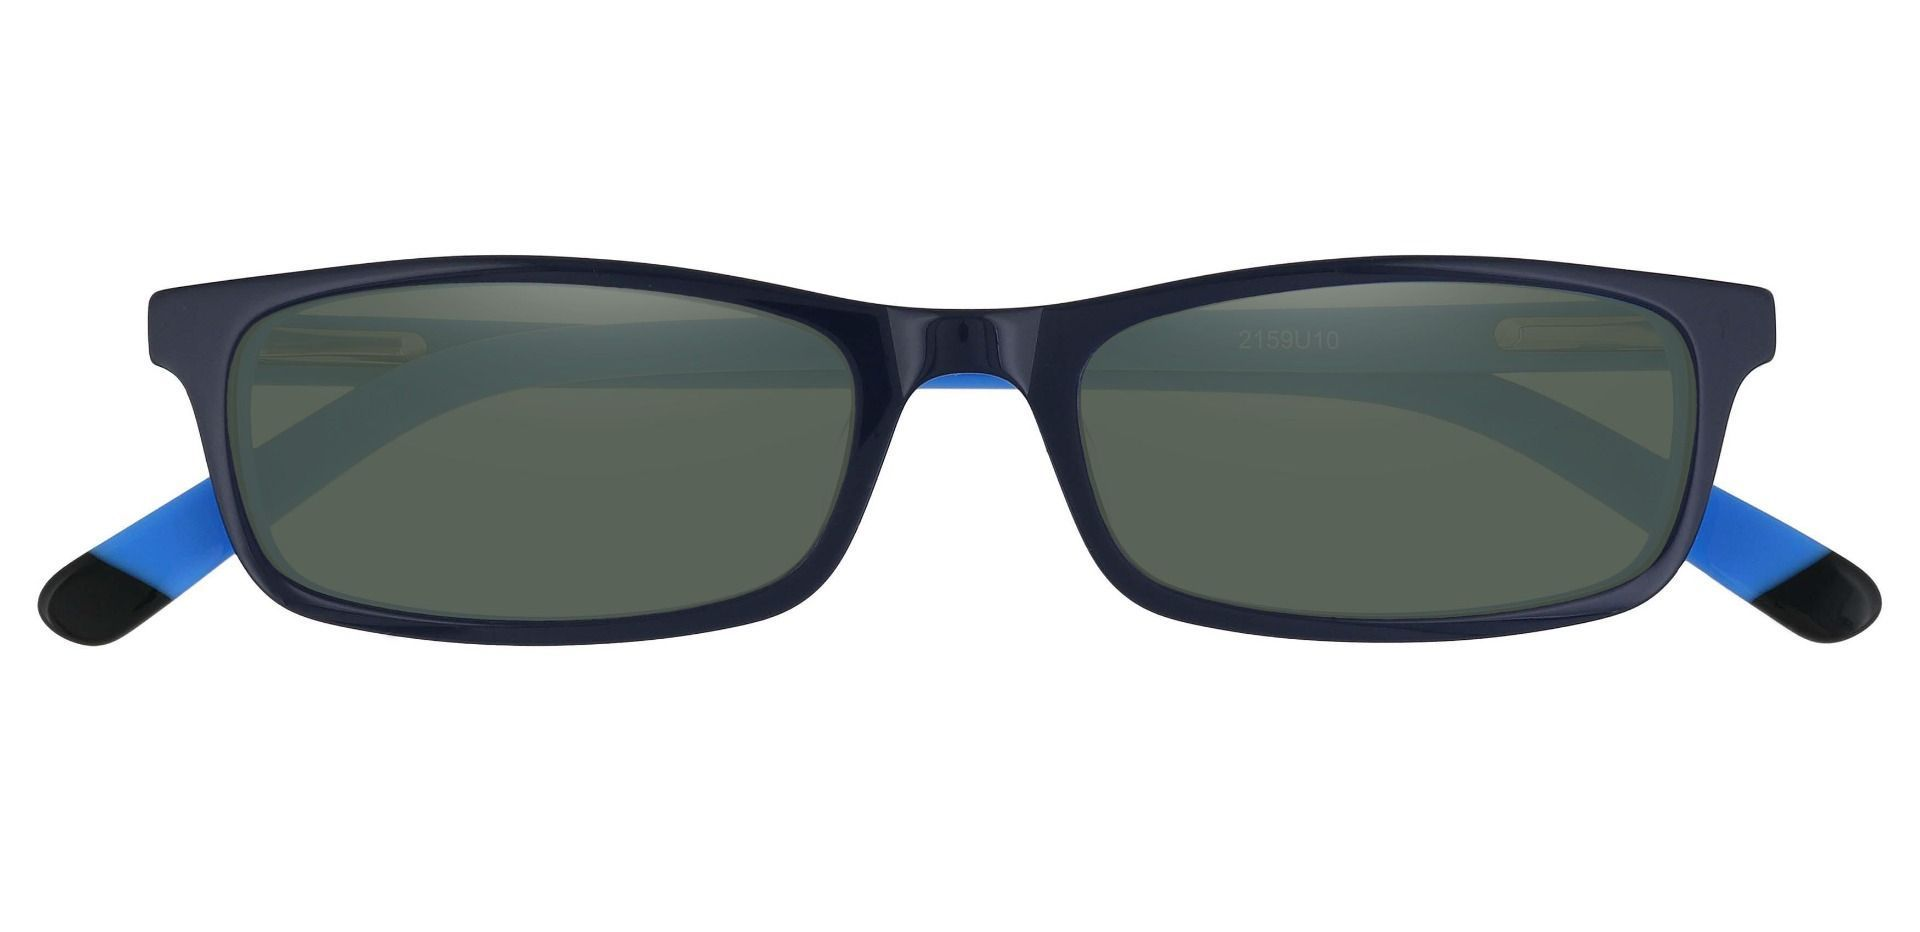 Palisades Rectangle Non-Rx Sunglasses - Blue Frame With Green Lenses